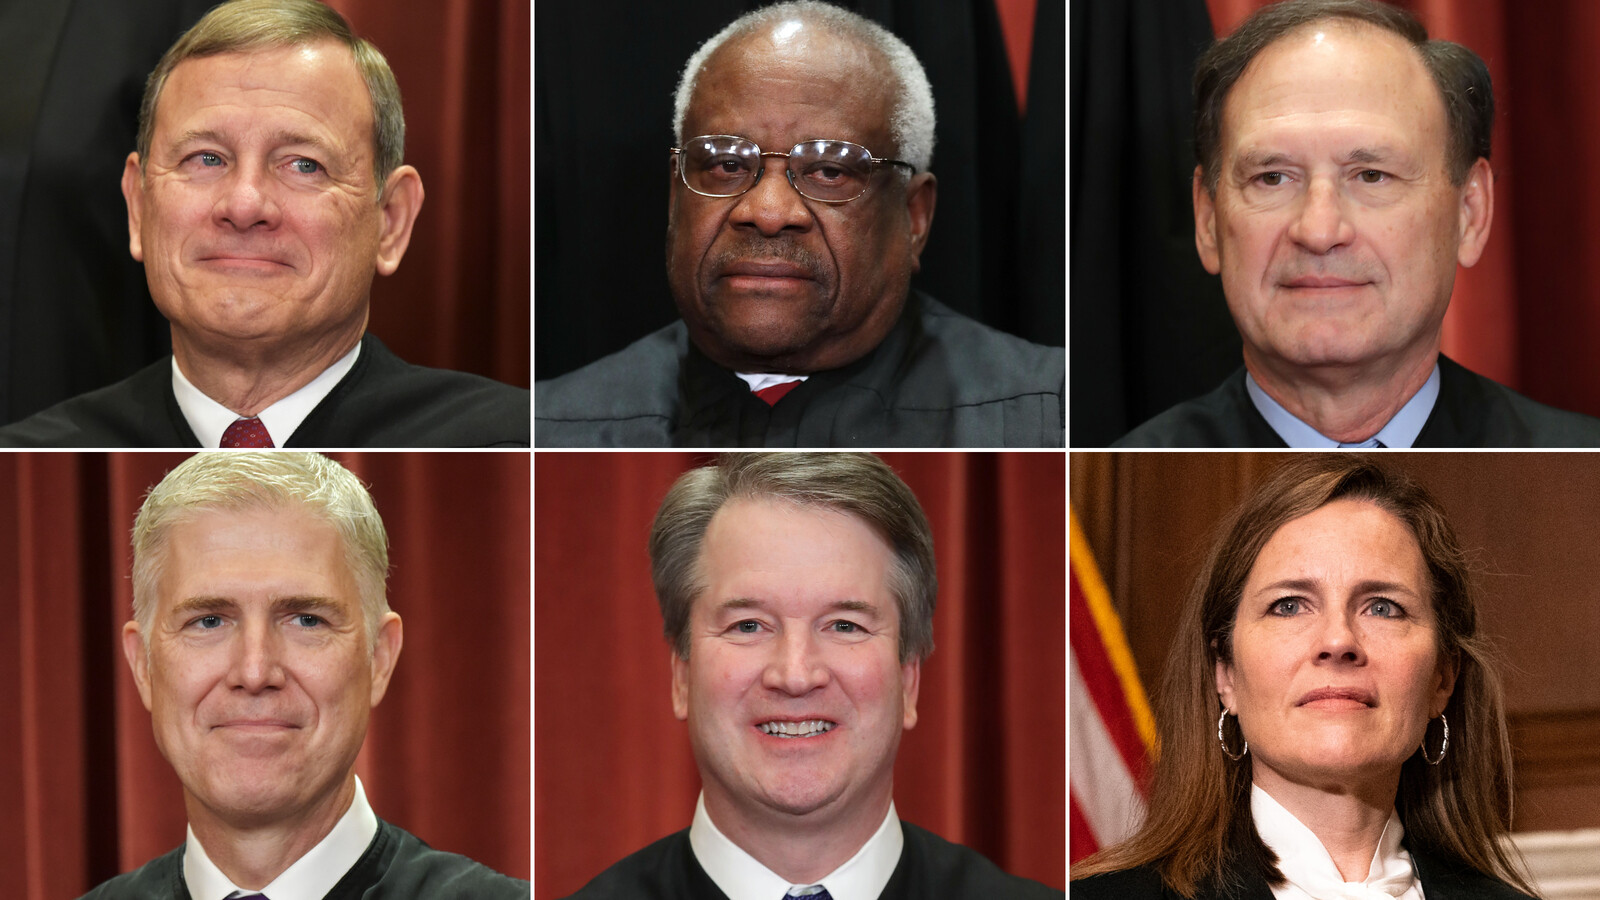 What the Supreme Court's order means for the future of Roe v. Wade